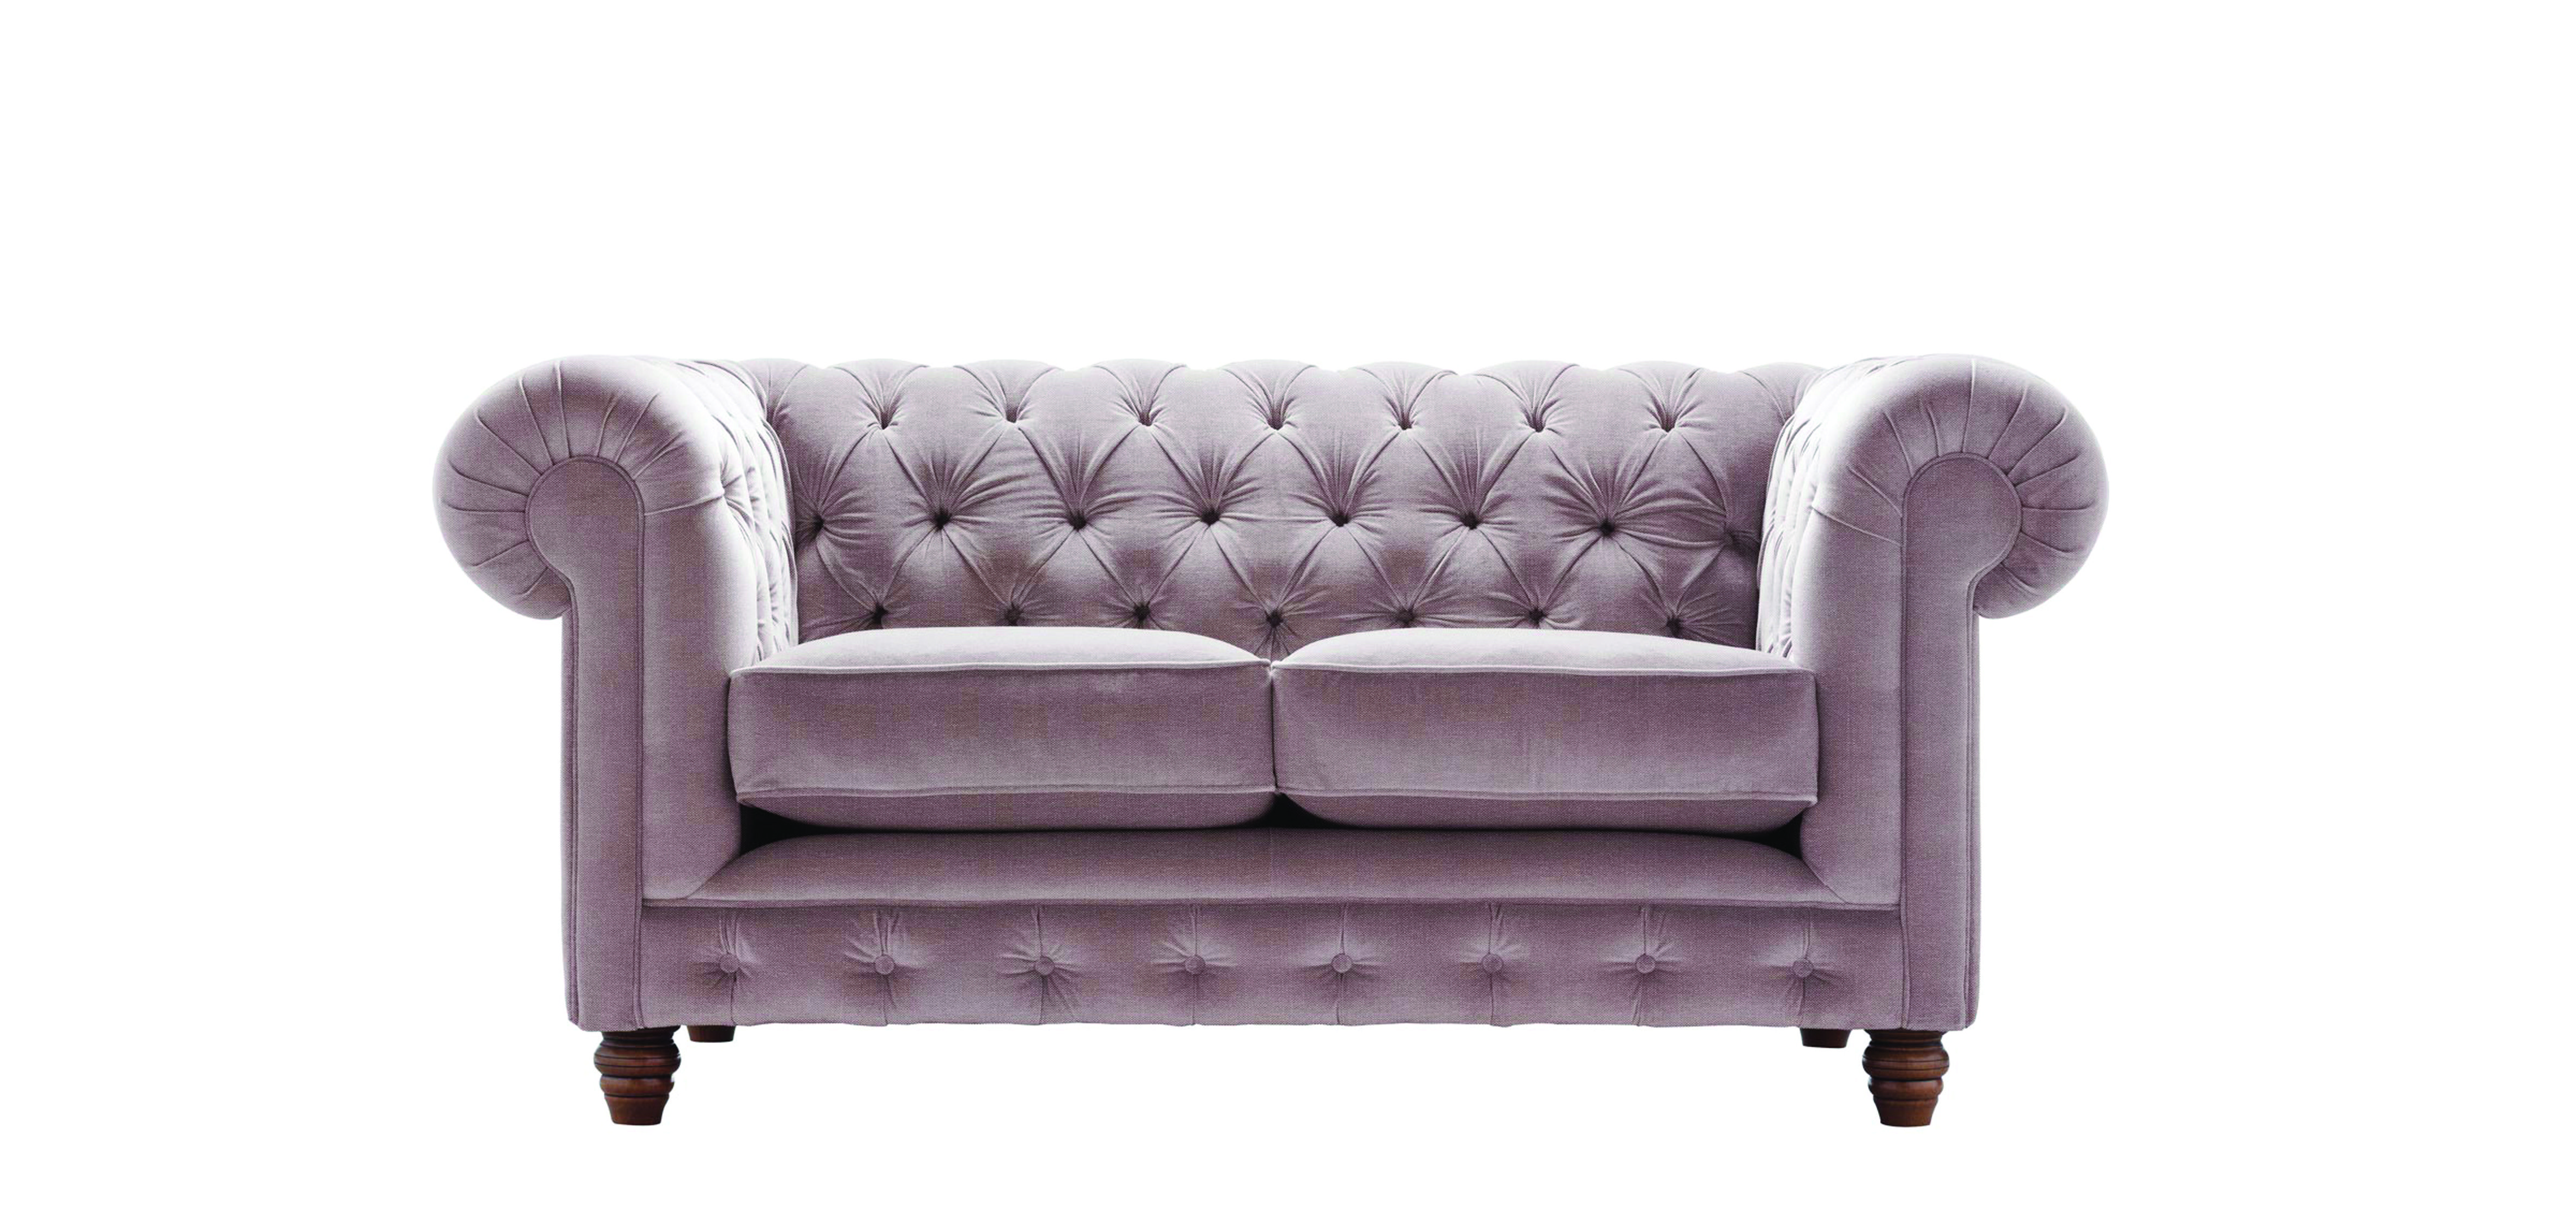 Couch Bronte two seater sofa £845 classic